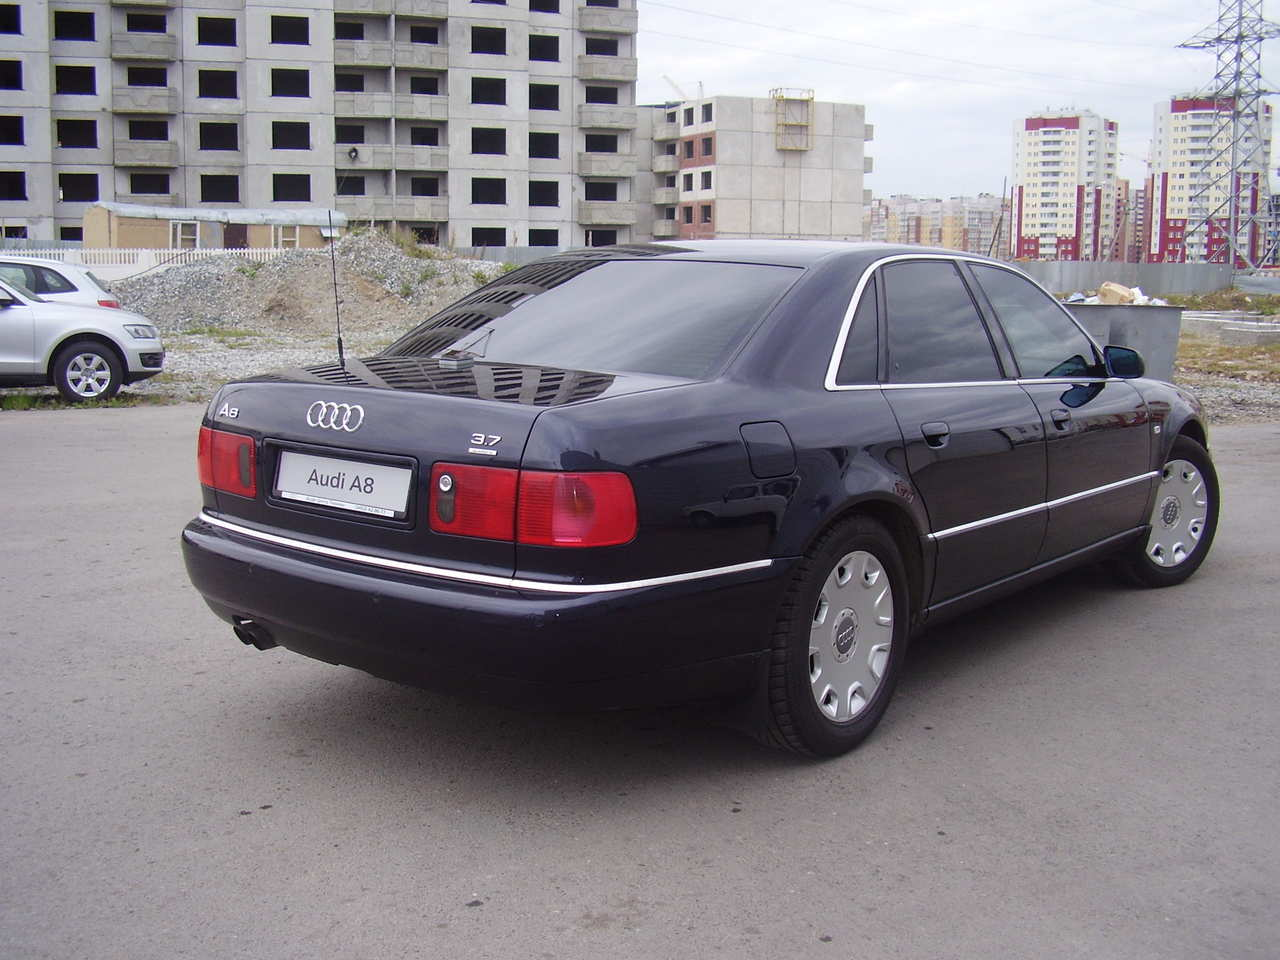 Used 2000 audi a8 photos 3600cc gasoline automatic for for 2000 audi a6 window problems